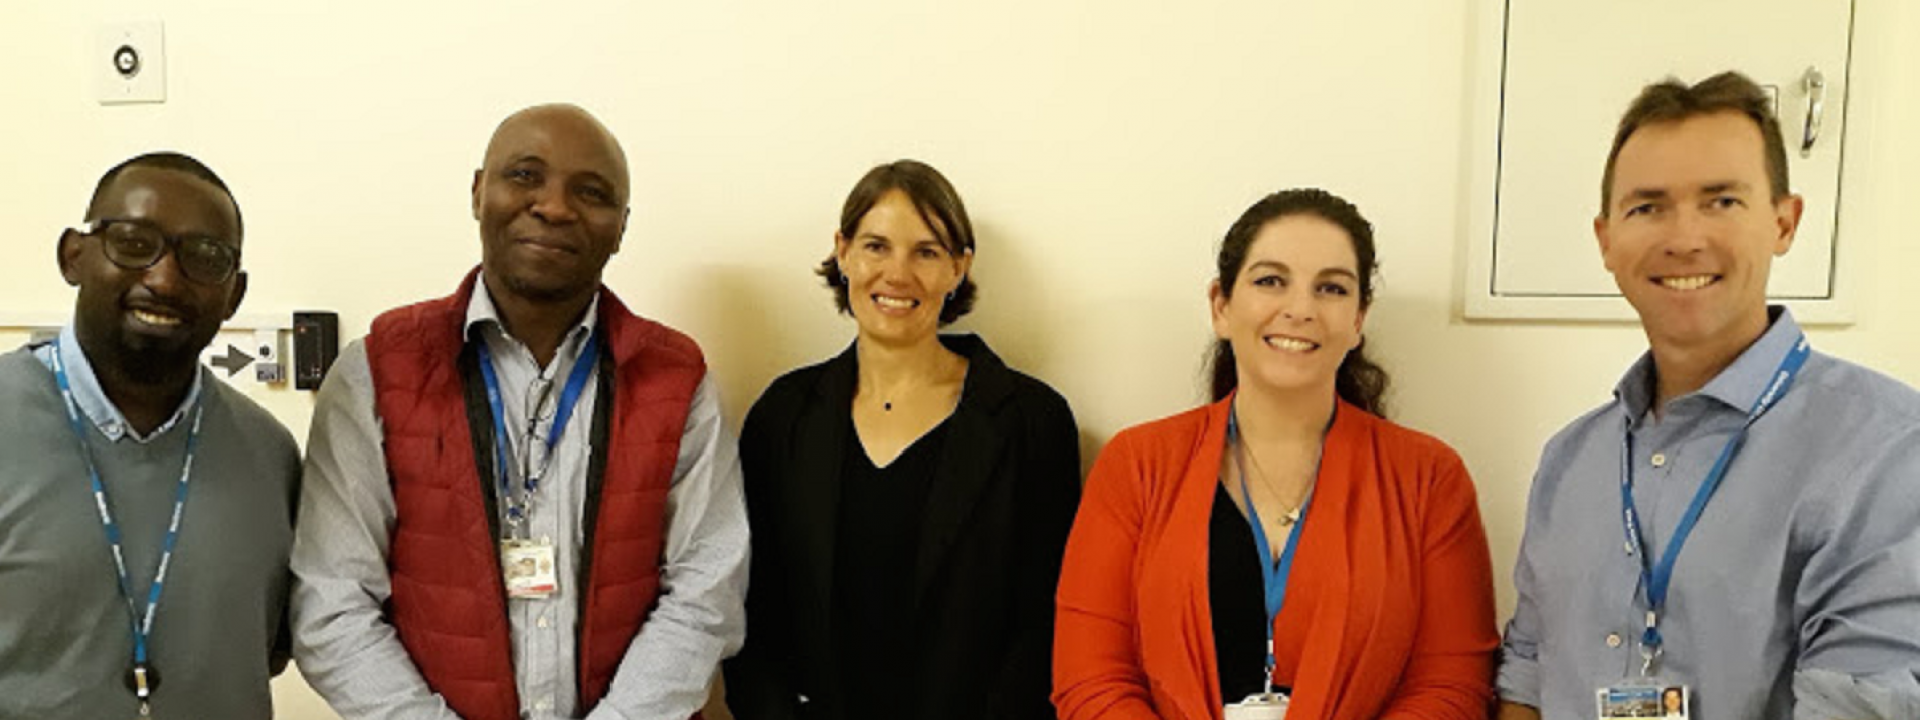 Investigator meeting for CAPTAIN Trial. Pictured from Left to Right: Edgar Lutaaya, Ikechi Okpechi, Alda Vermeulen, Lara Wiese, Robert Freercks